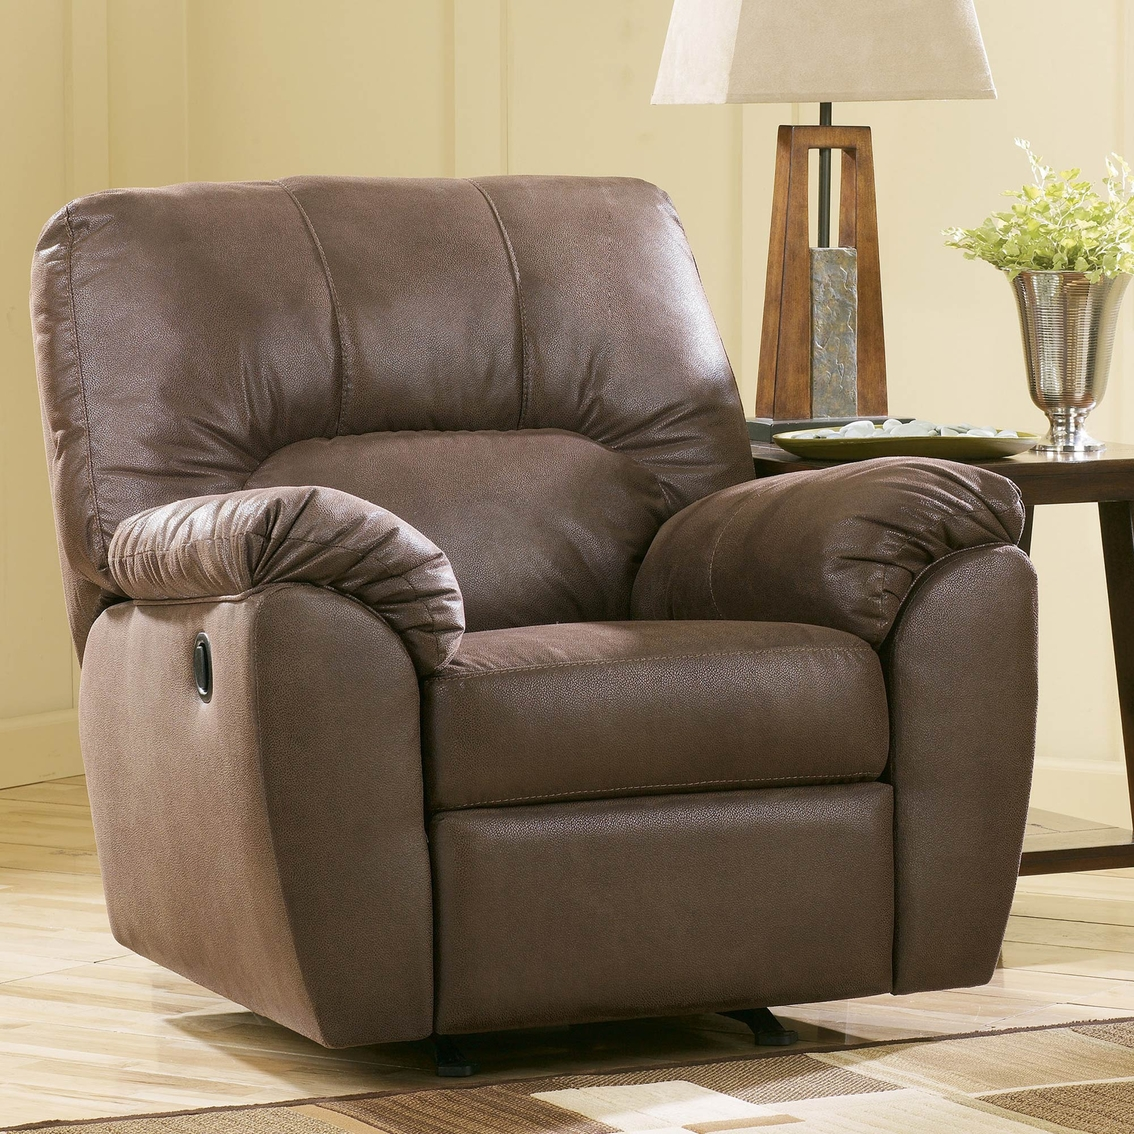 Ashley Recliner Chair Ashley Amazon Walnut Rocker Recliner Ashley Furniture